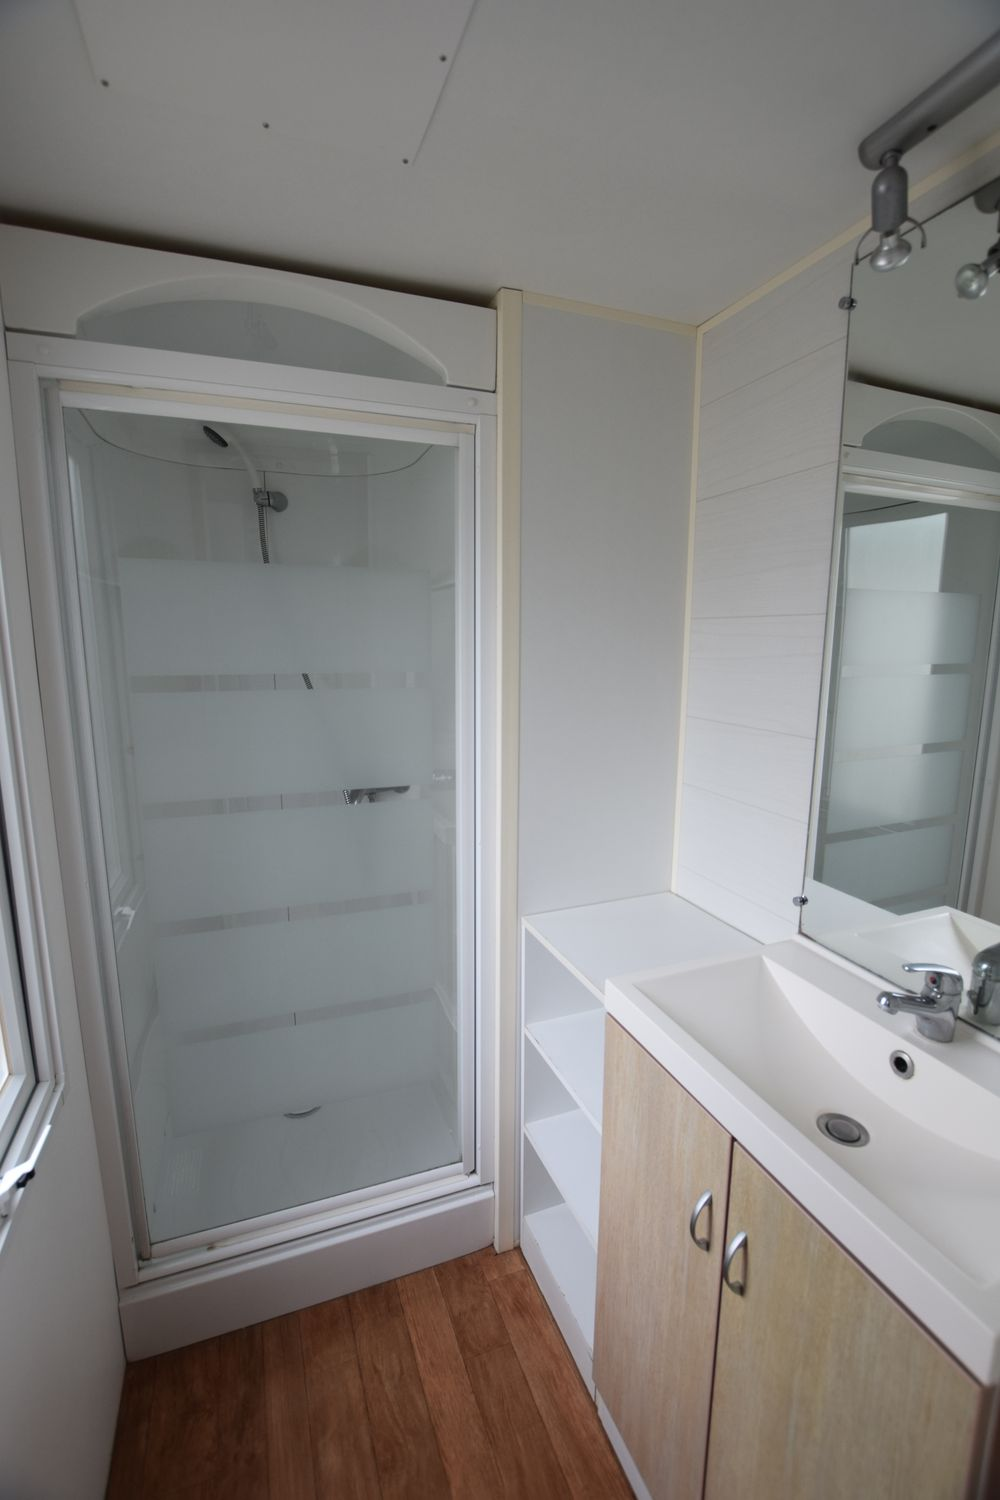 Ohara 7.84 - 2006 - Mobil home d'occasion - 7 500€ - Zen Mobil homes